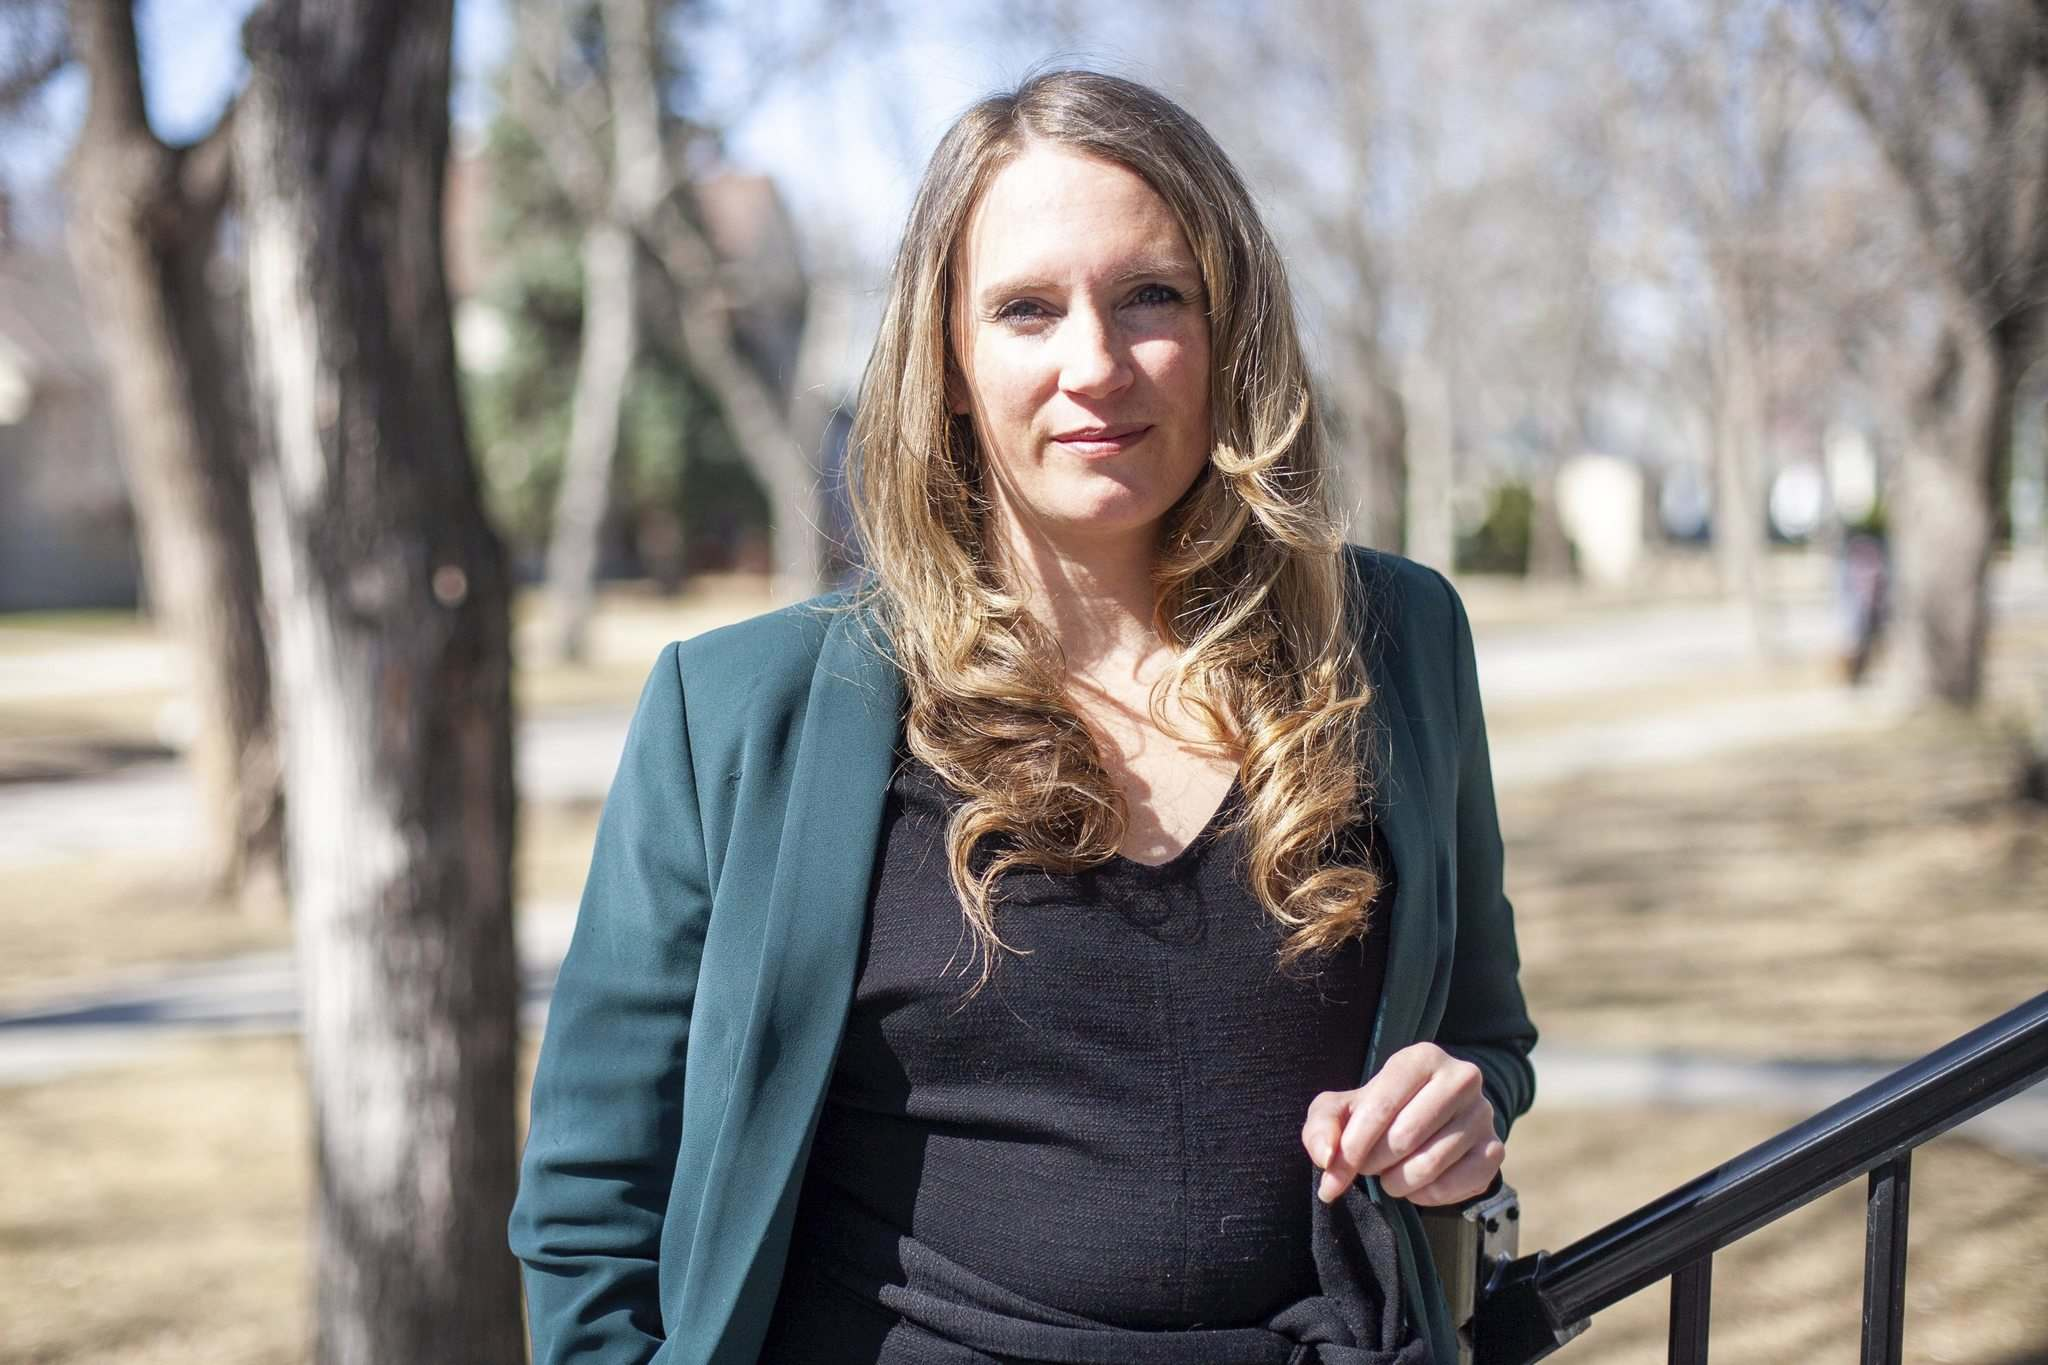 Kaitlyn Mitchell says the bill appears to target protests on public property. (Daniel Crump / Winnipeg Free Press)</p>